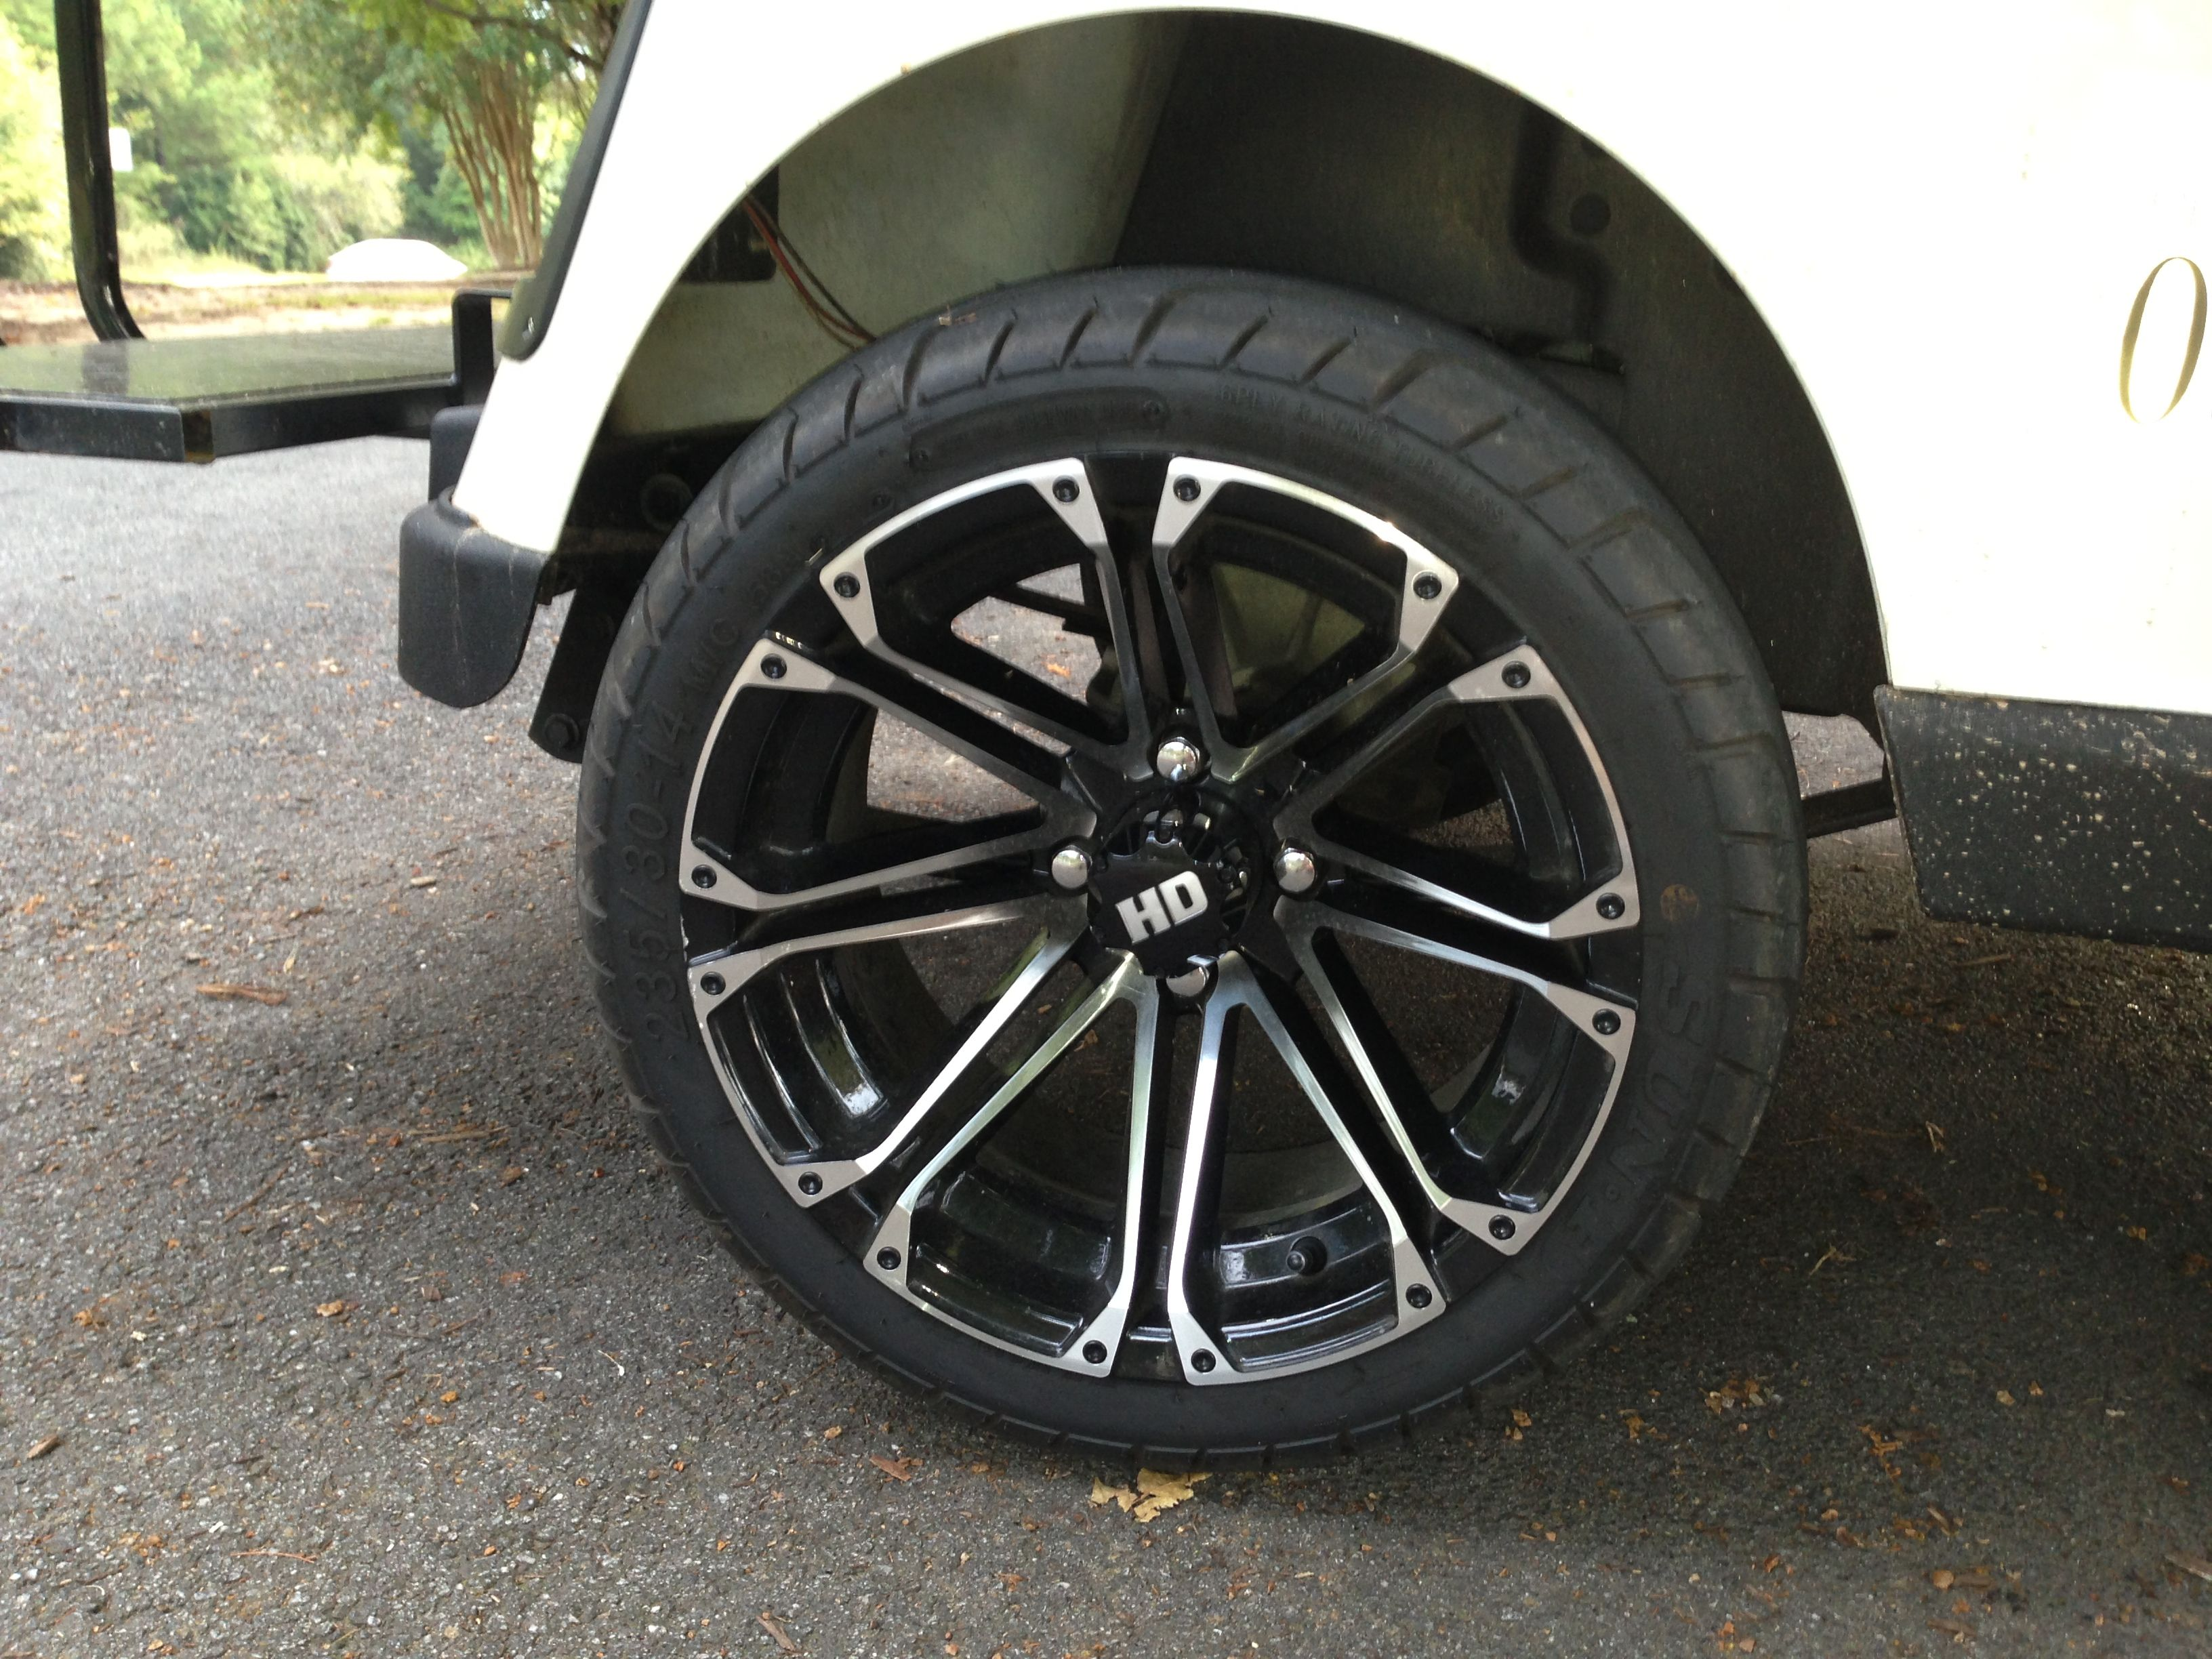 Golf Cart Wheels And Tires Sizes Finishes For Style And Custom Look Golf Cart Wheels Golf Cart Tires Golf Carts